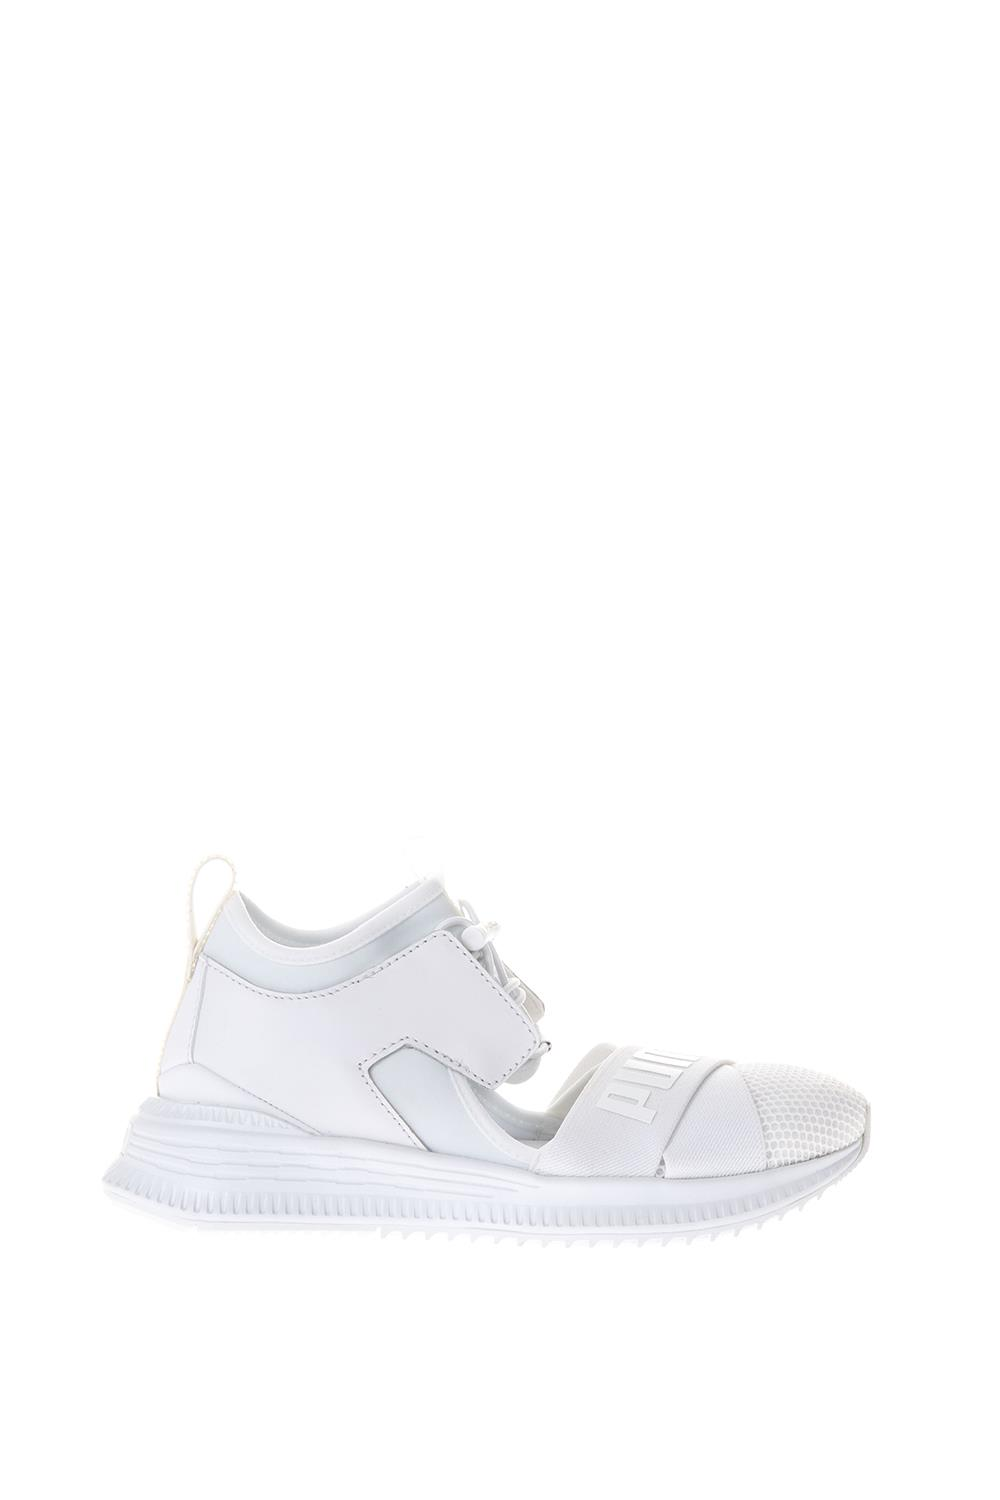 huge discount 8a74c 1ff20 WHITE FENTY SNEAKERS BY RIHANNA SS 2018